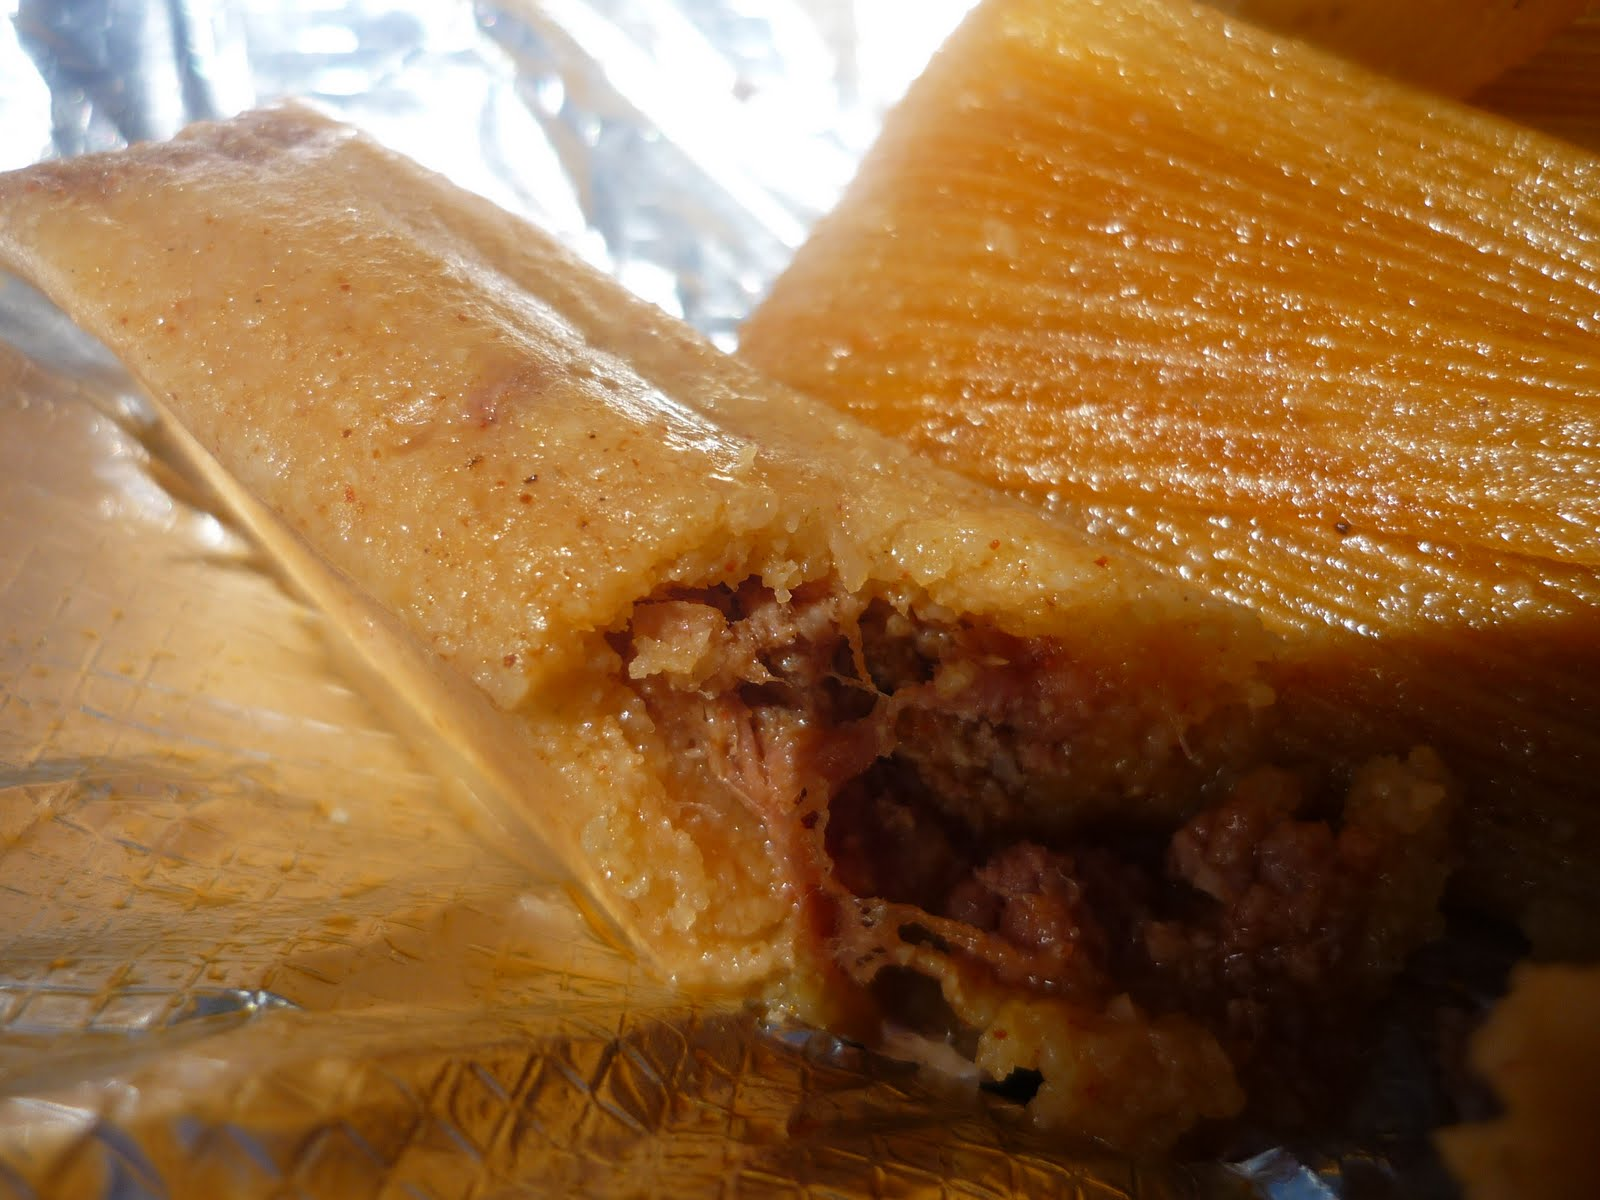 ... homemade tamales recipe on food52 real homemade tamales recipes